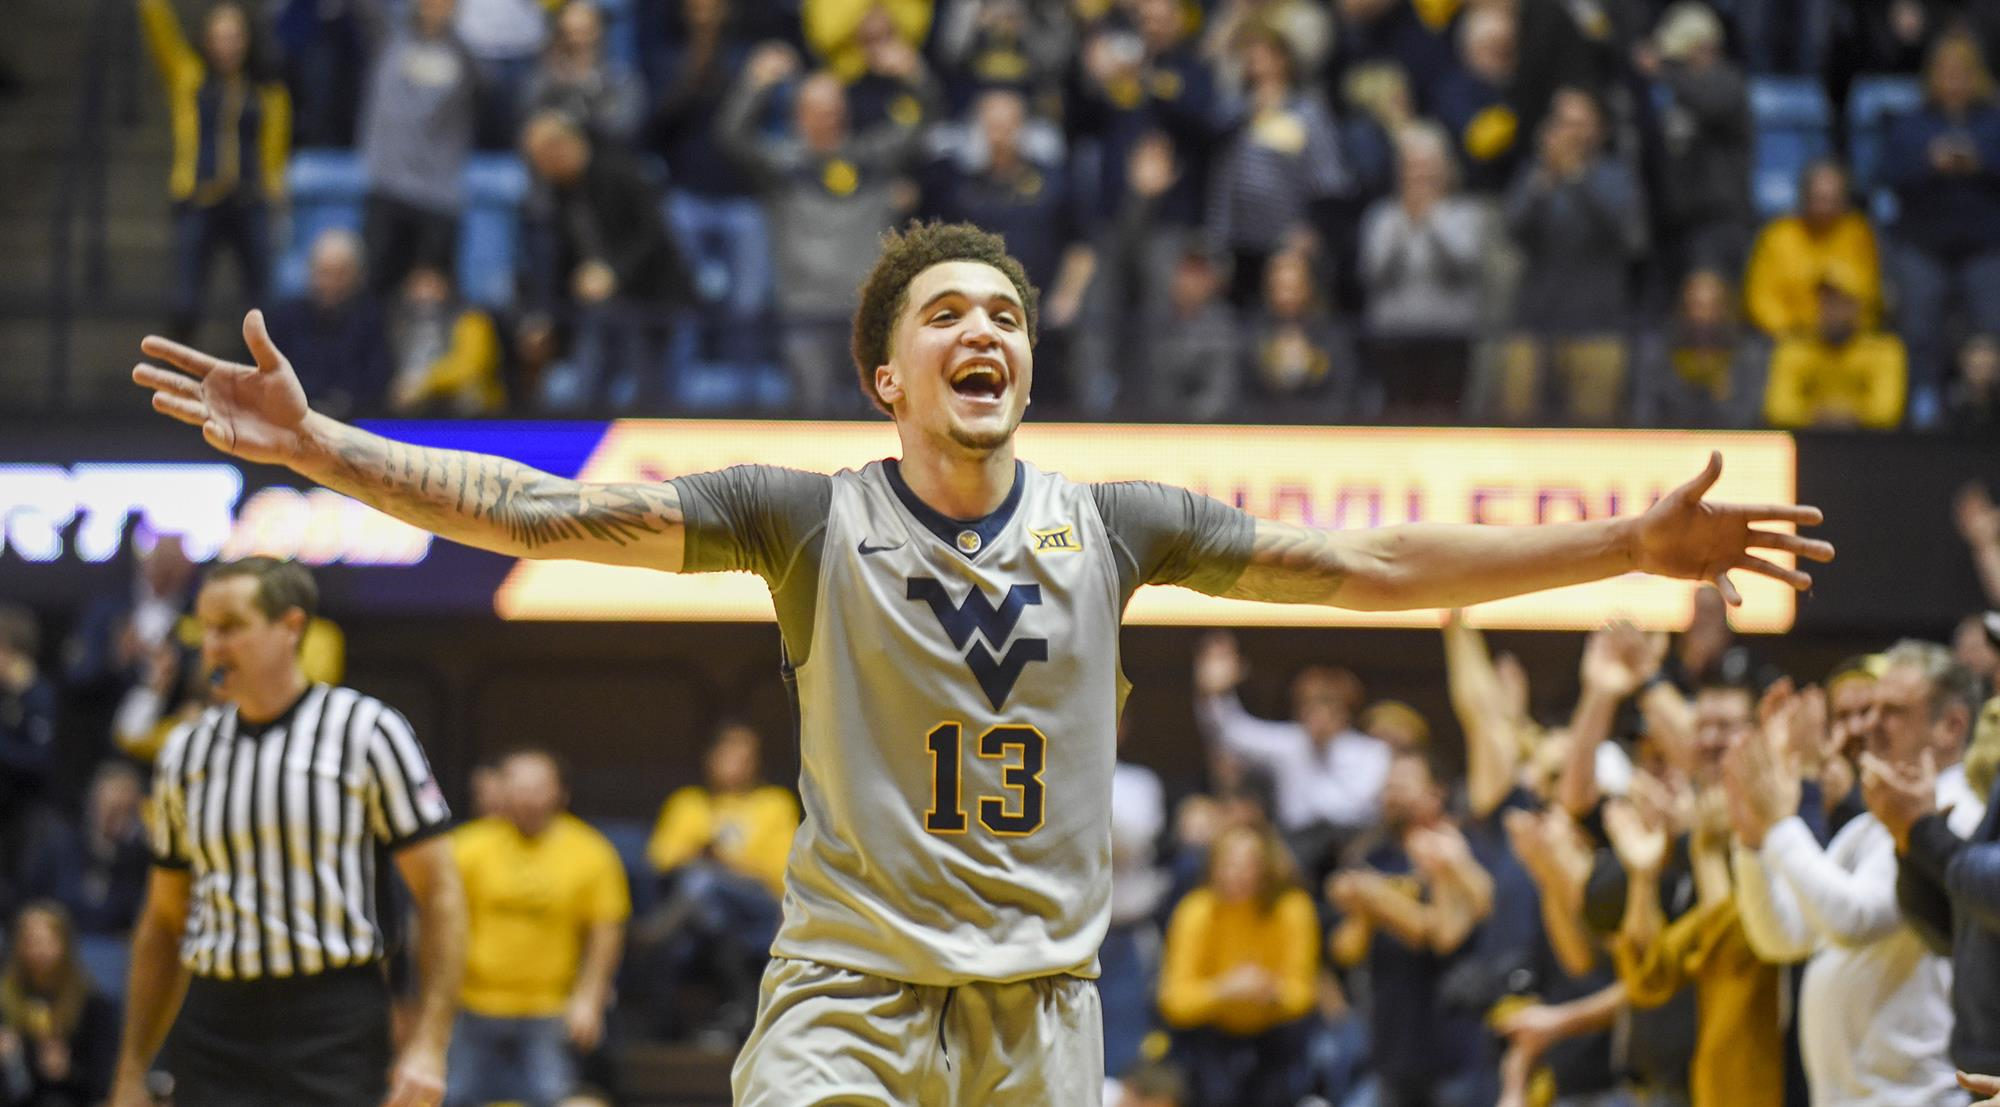 Where Will The Mountaineers Be Ranked?